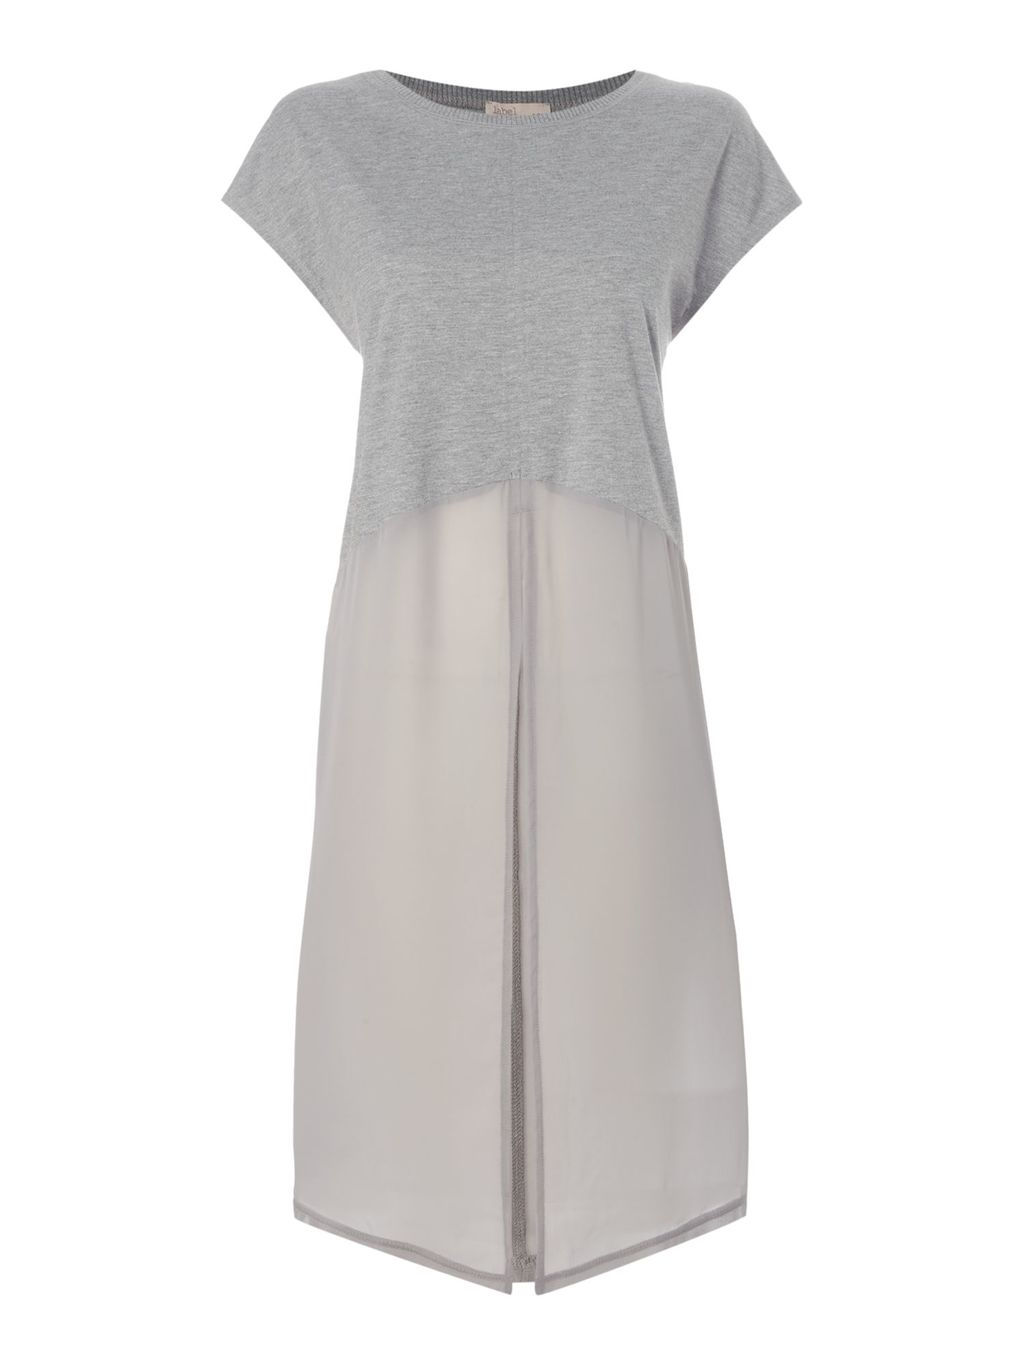 Longline Chiffon Mix Tee, Grey - pattern: plain; predominant colour: light grey; occasions: casual; style: top; fibres: polyester/polyamide - mix; fit: body skimming; neckline: crew; length: mid thigh; sleeve length: short sleeve; sleeve style: standard; texture group: sheer fabrics/chiffon/organza etc.; pattern type: fabric; wardrobe: basic; season: a/w 2016